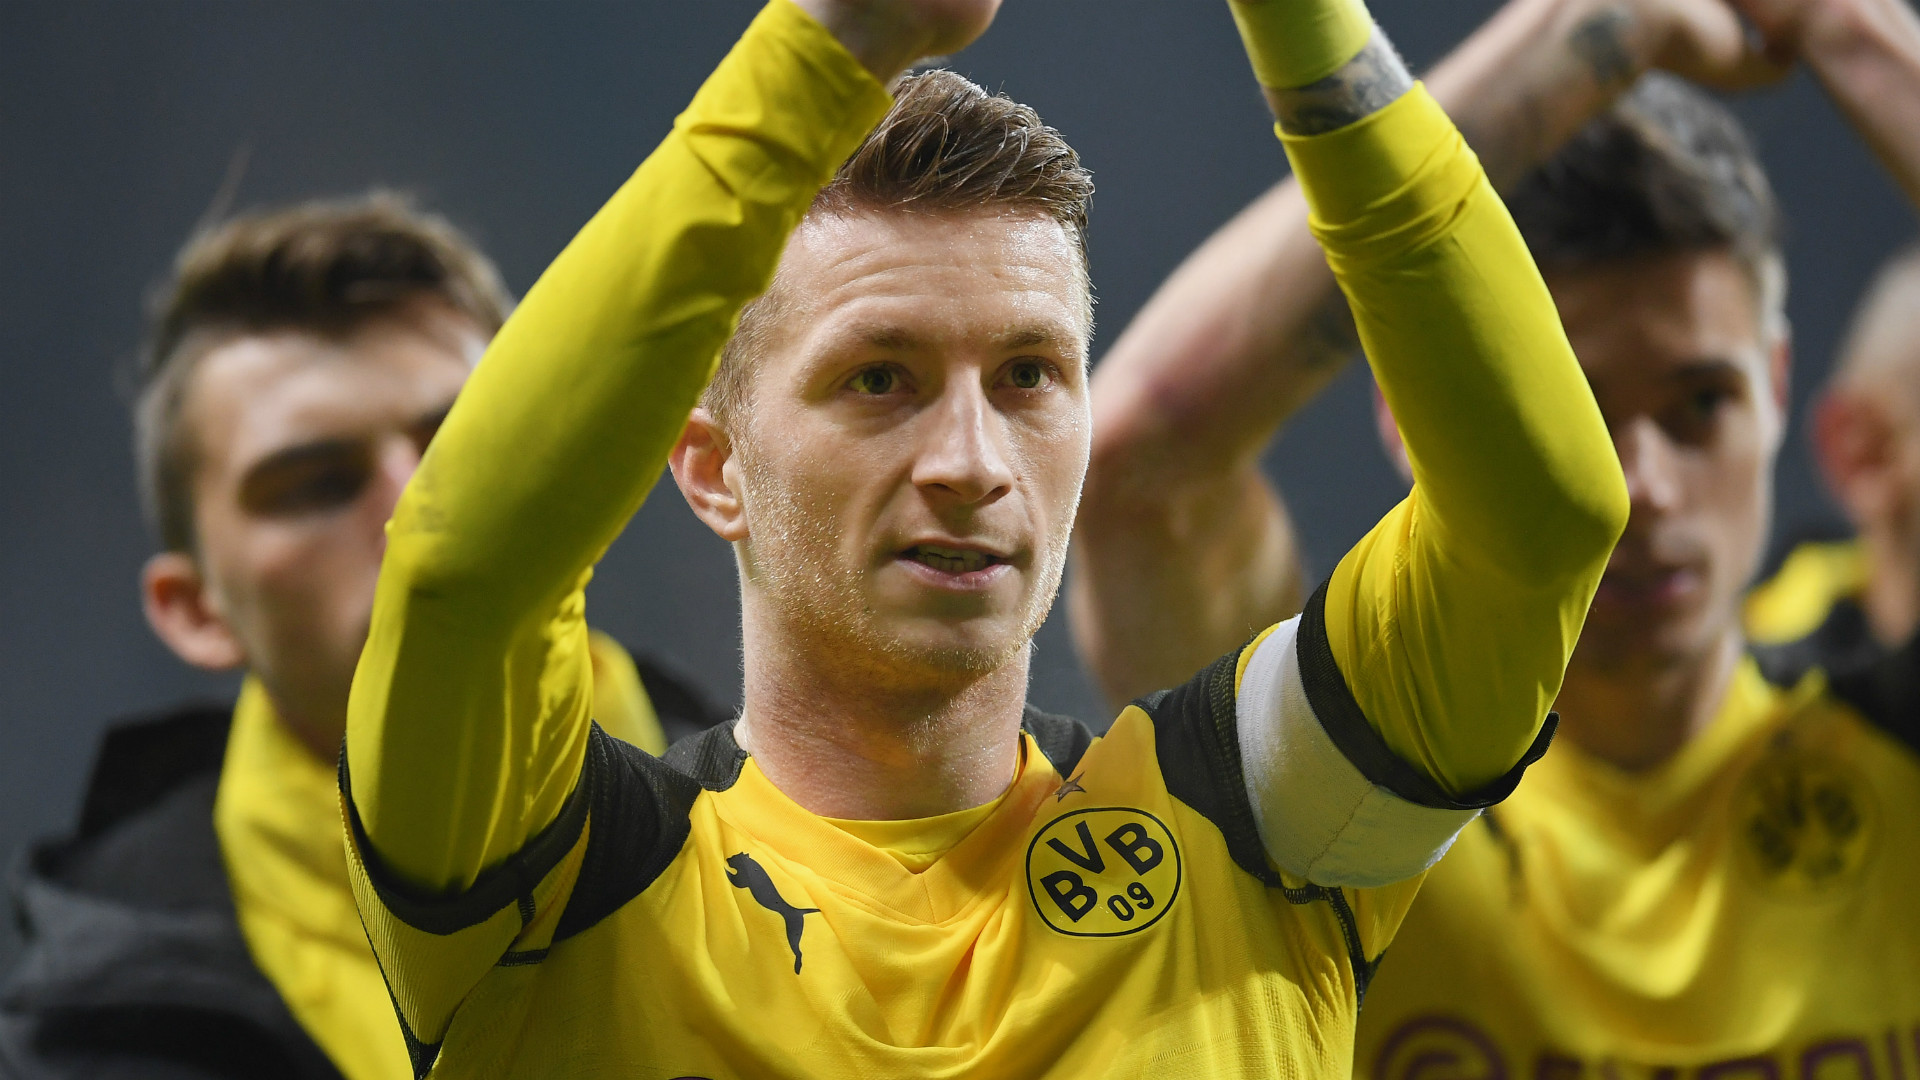 'I belong here' - Reus does not regret decision to stay at Dortmund despite offers from Barca, Arsenal and PSG